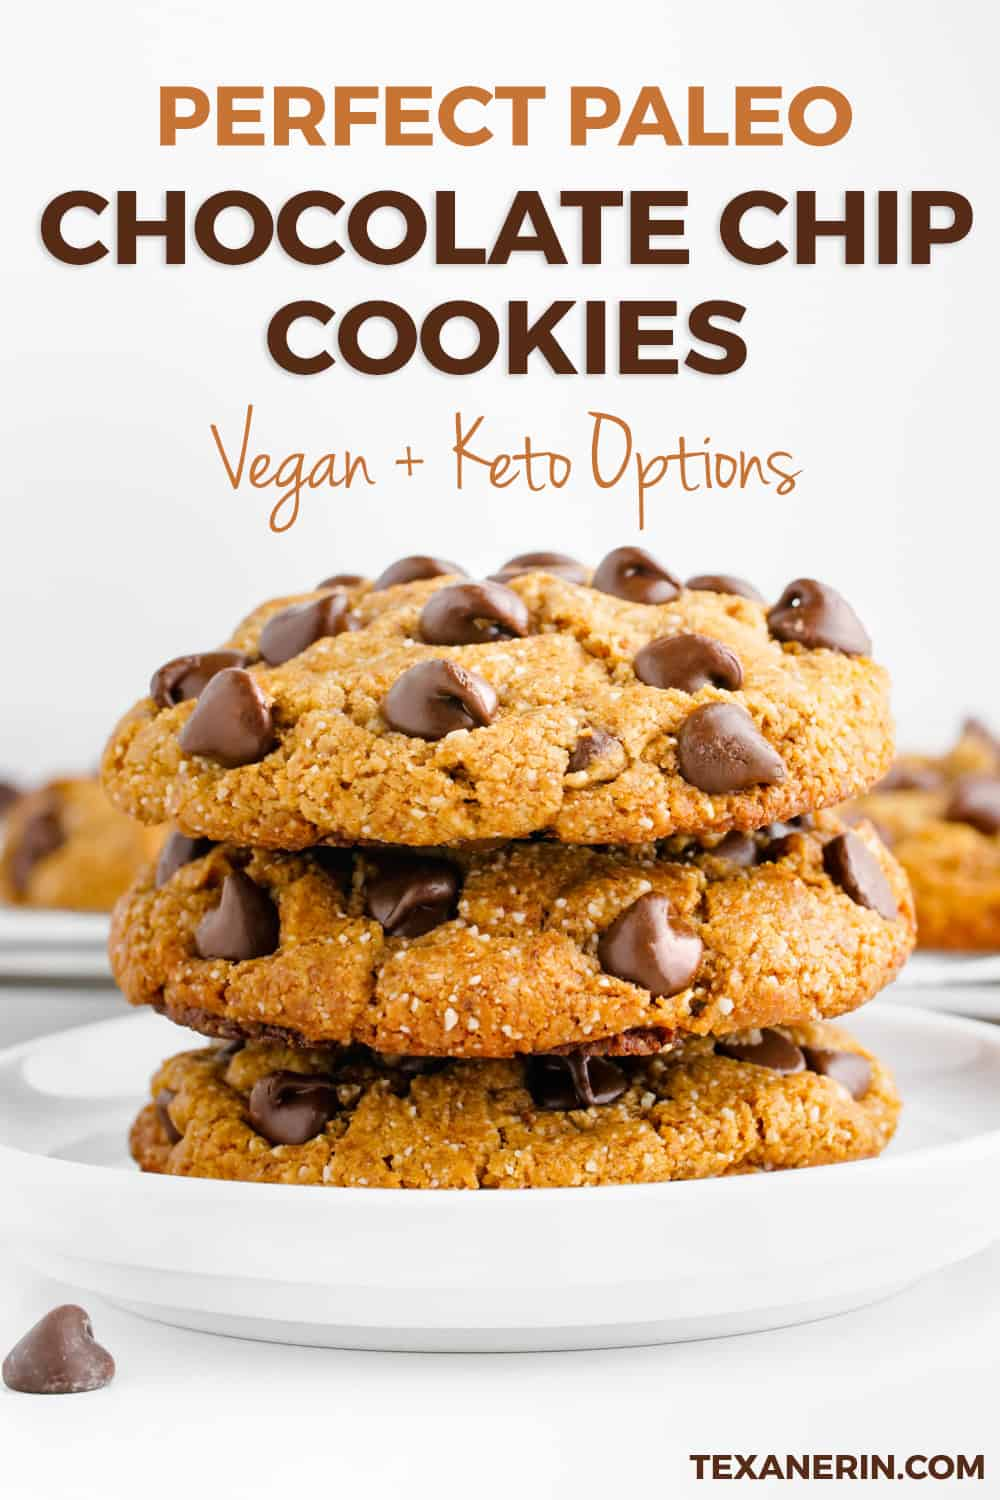 These perfect paleo chocolate chip cookies are thick, chewy and have the perfect texture. Many of the reviewers have called these the best cookies ever and said that nobody had a clue that they were paleo (or even gluten-free)!